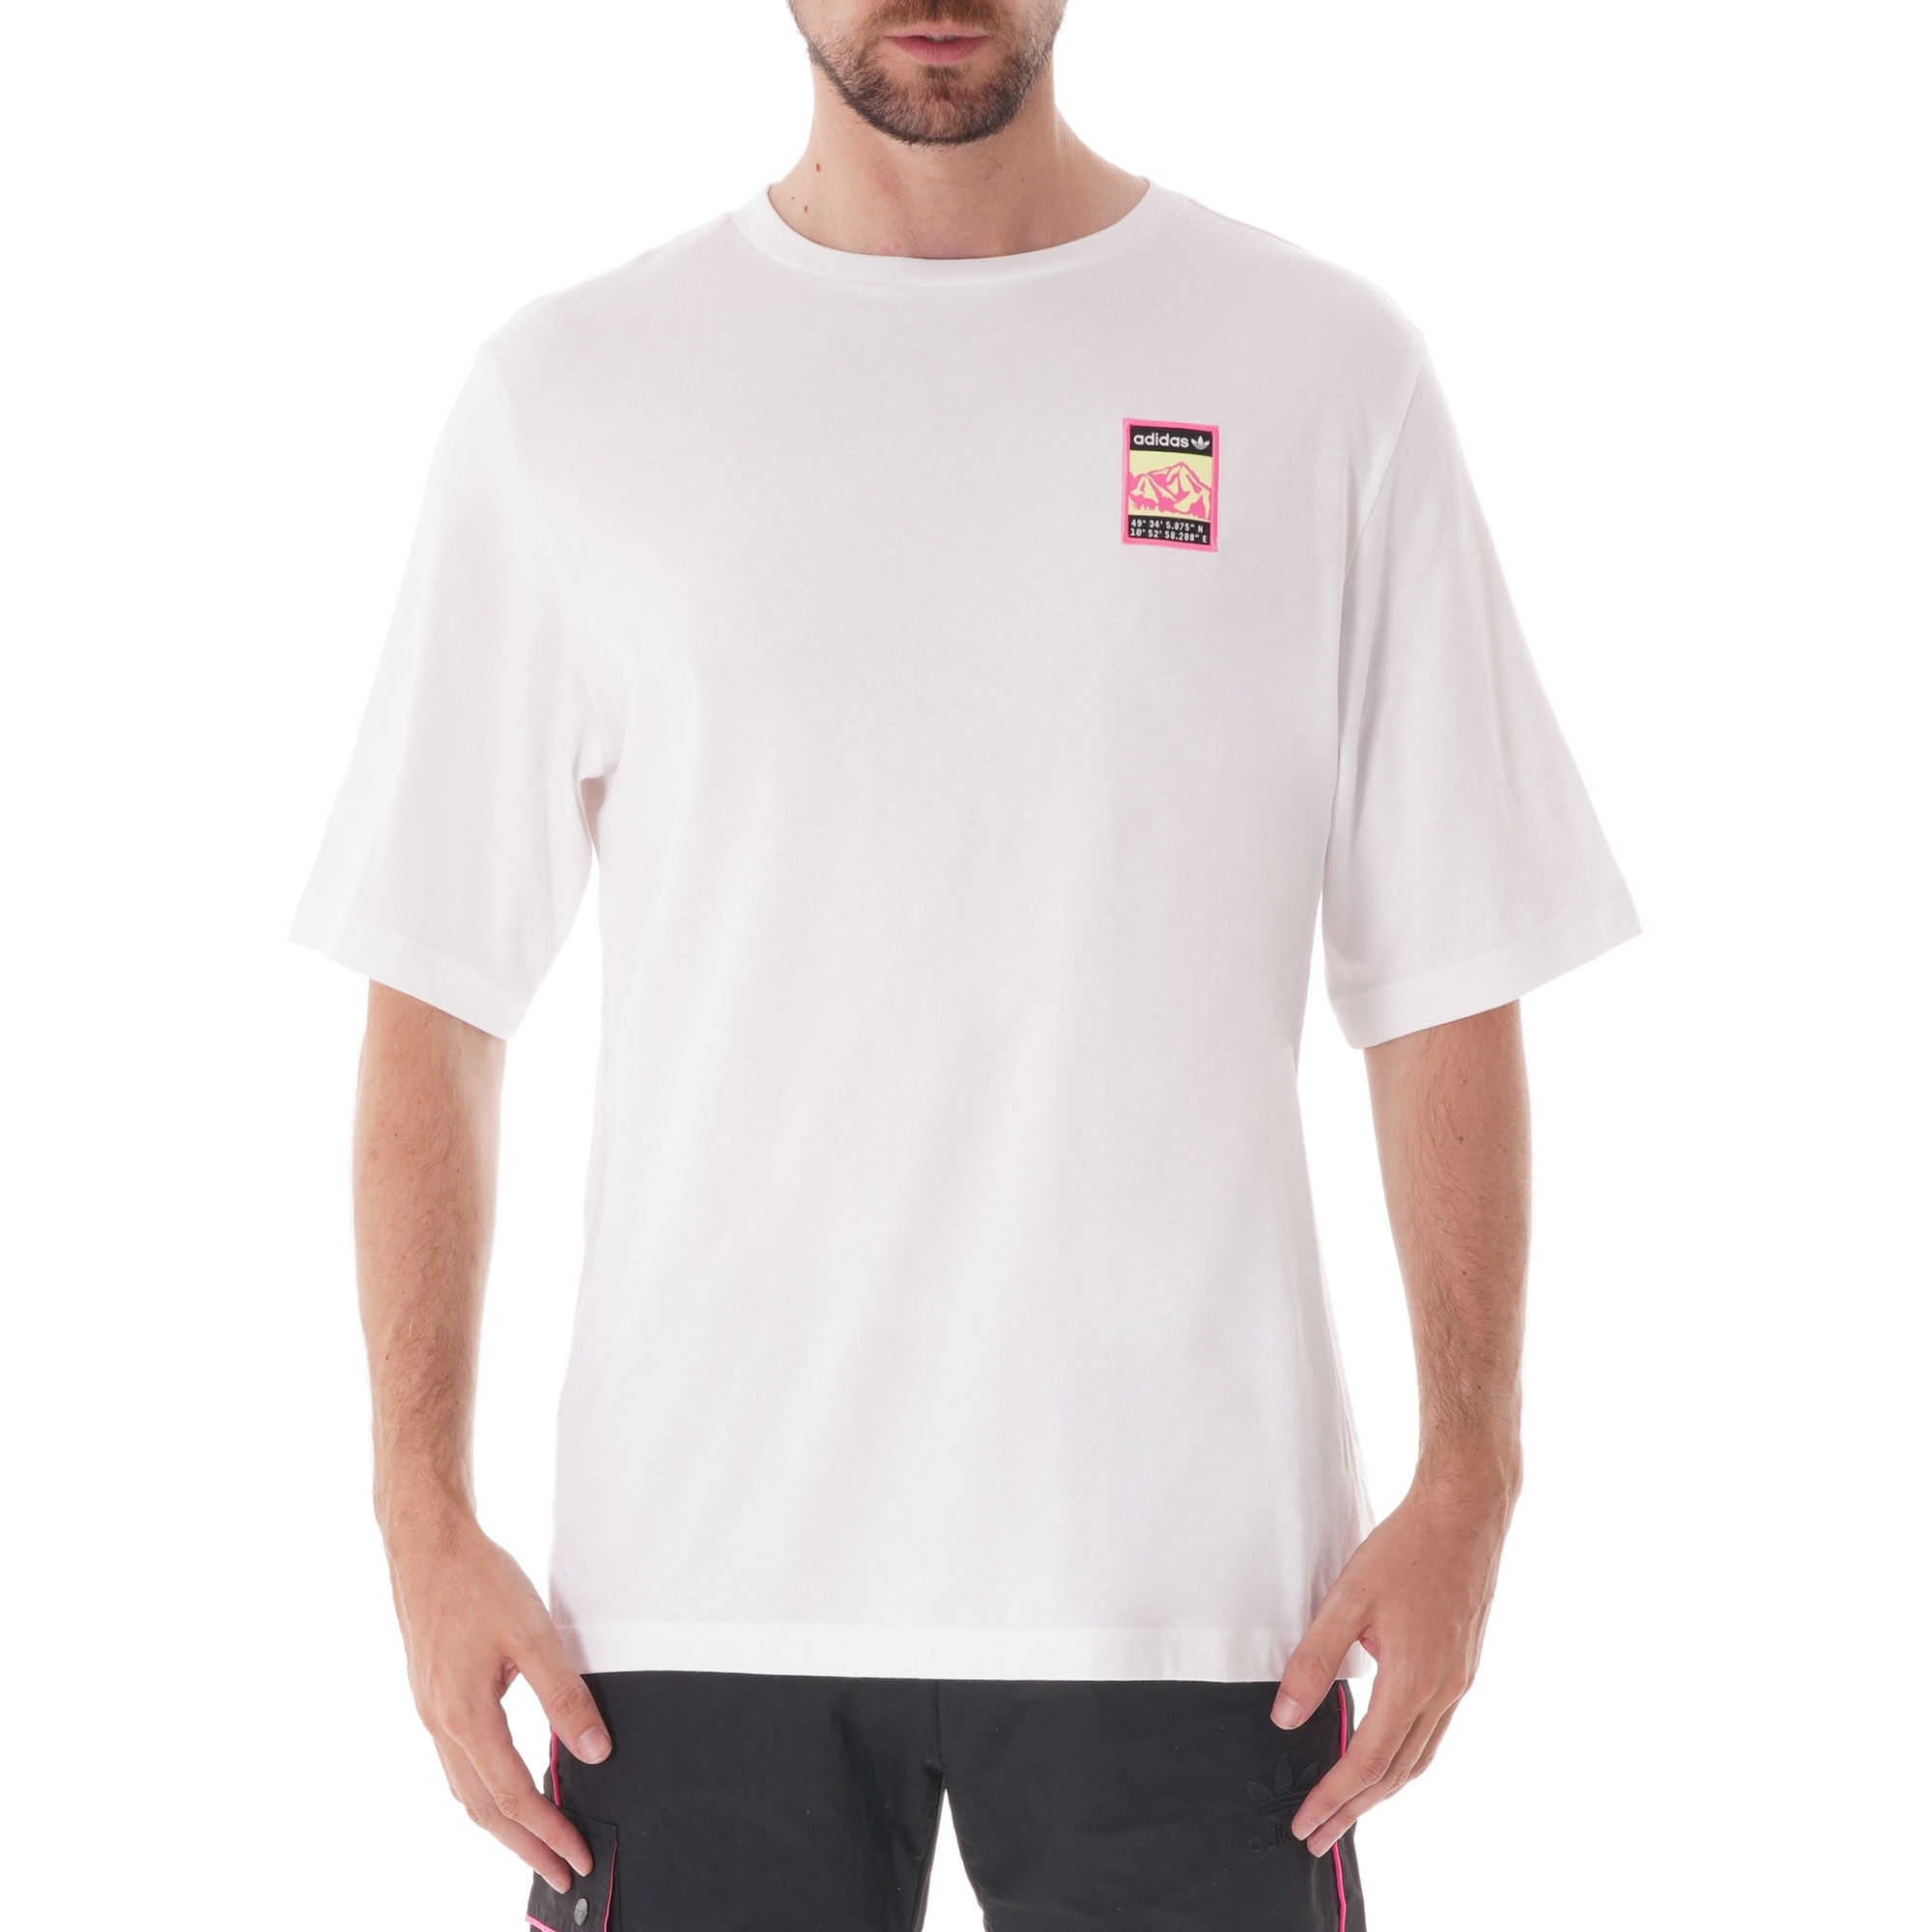 Adiplore Graphic Tee White